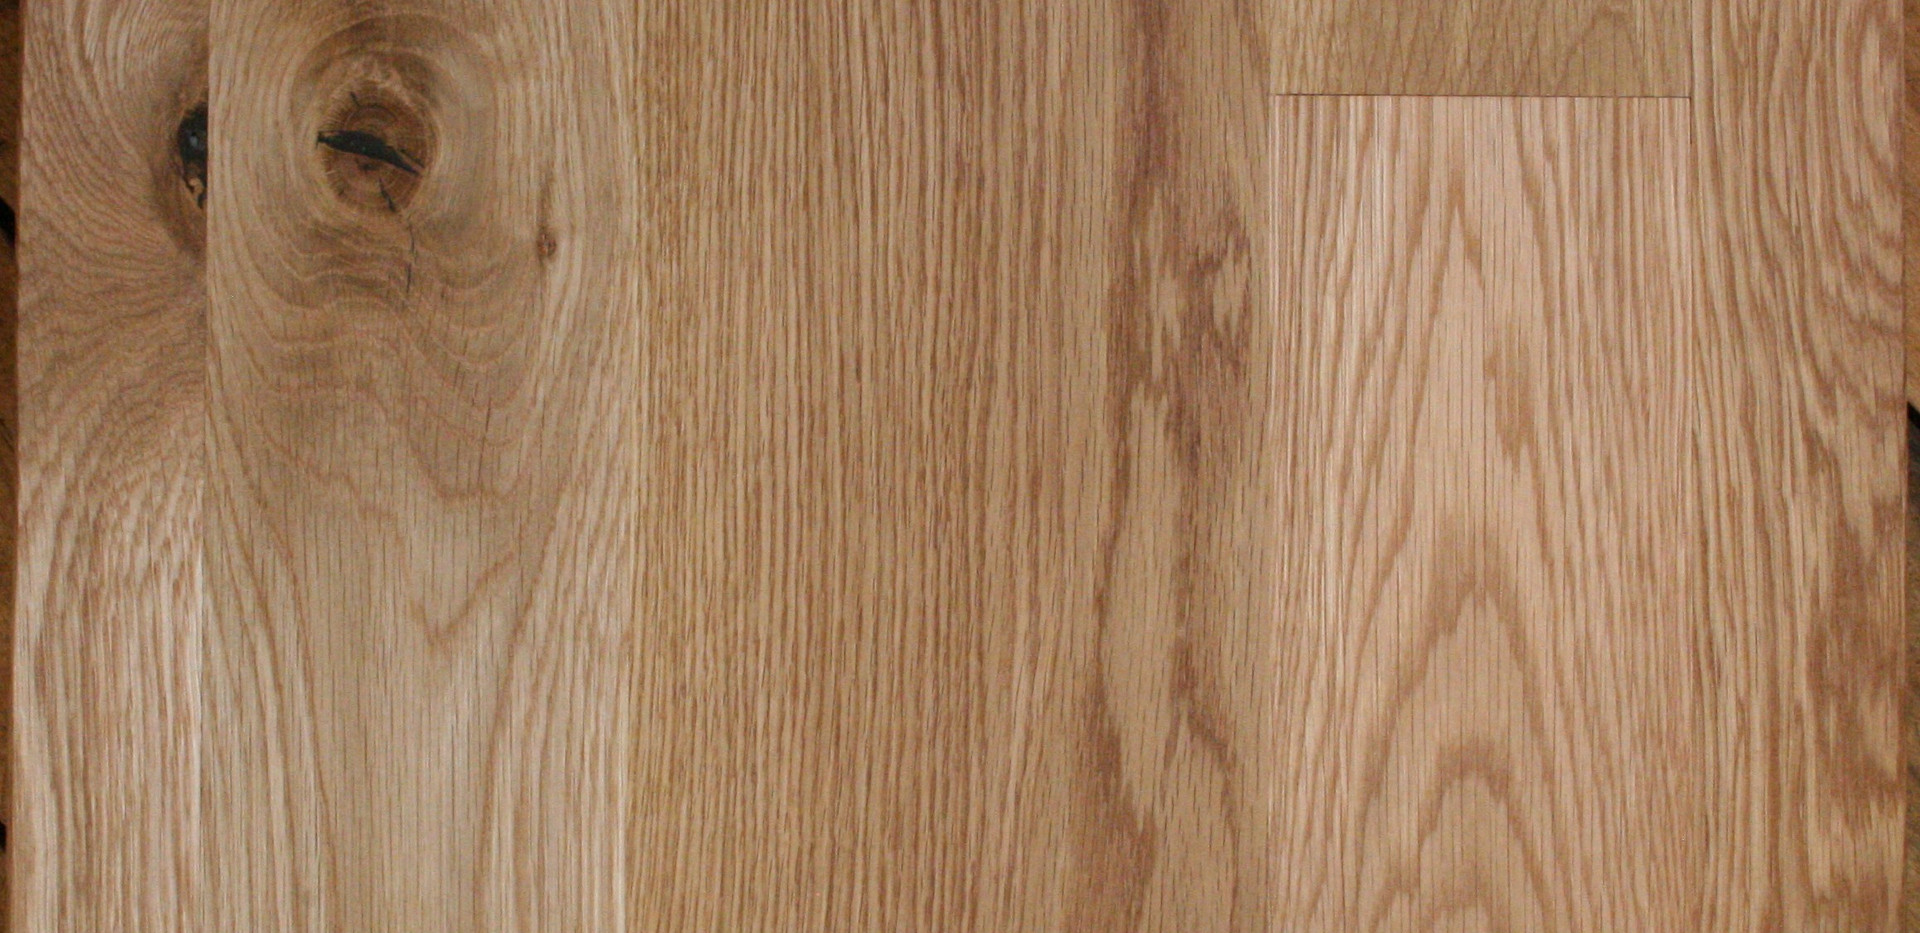 Natural White Oak Flooring